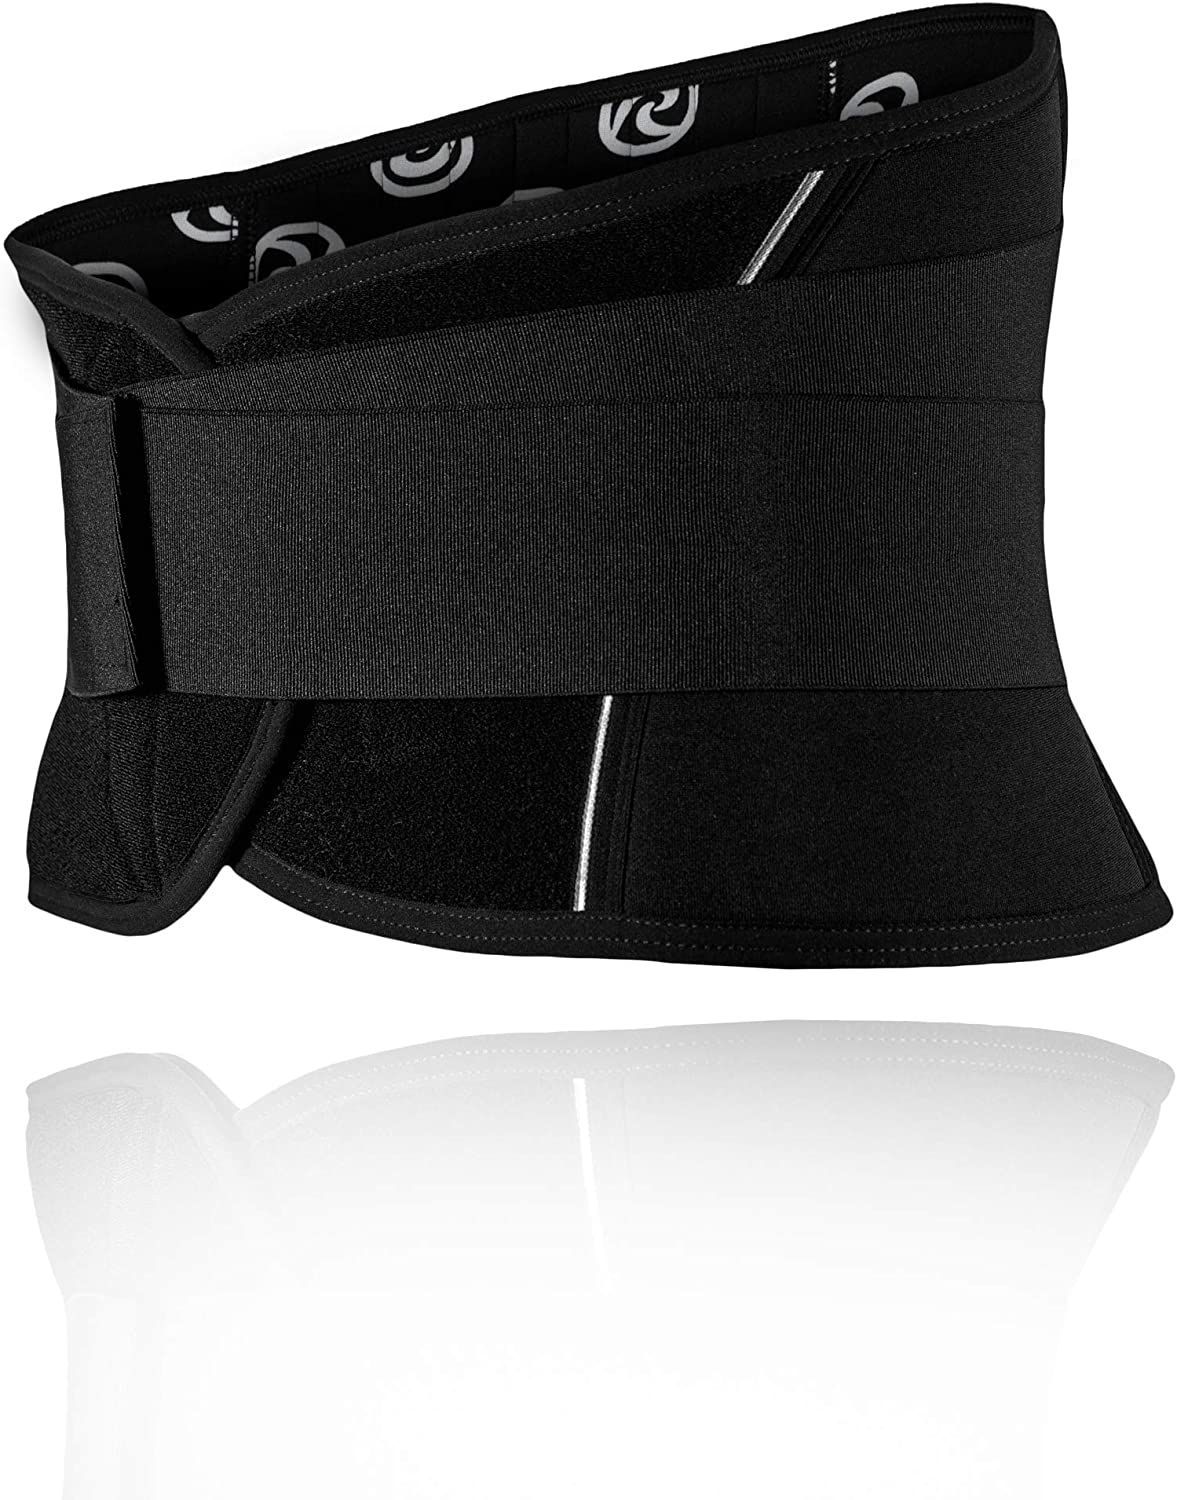 Rehband UD Tampa Mall X-Stable Back Support Black Large - Super Special SALE held 5mm